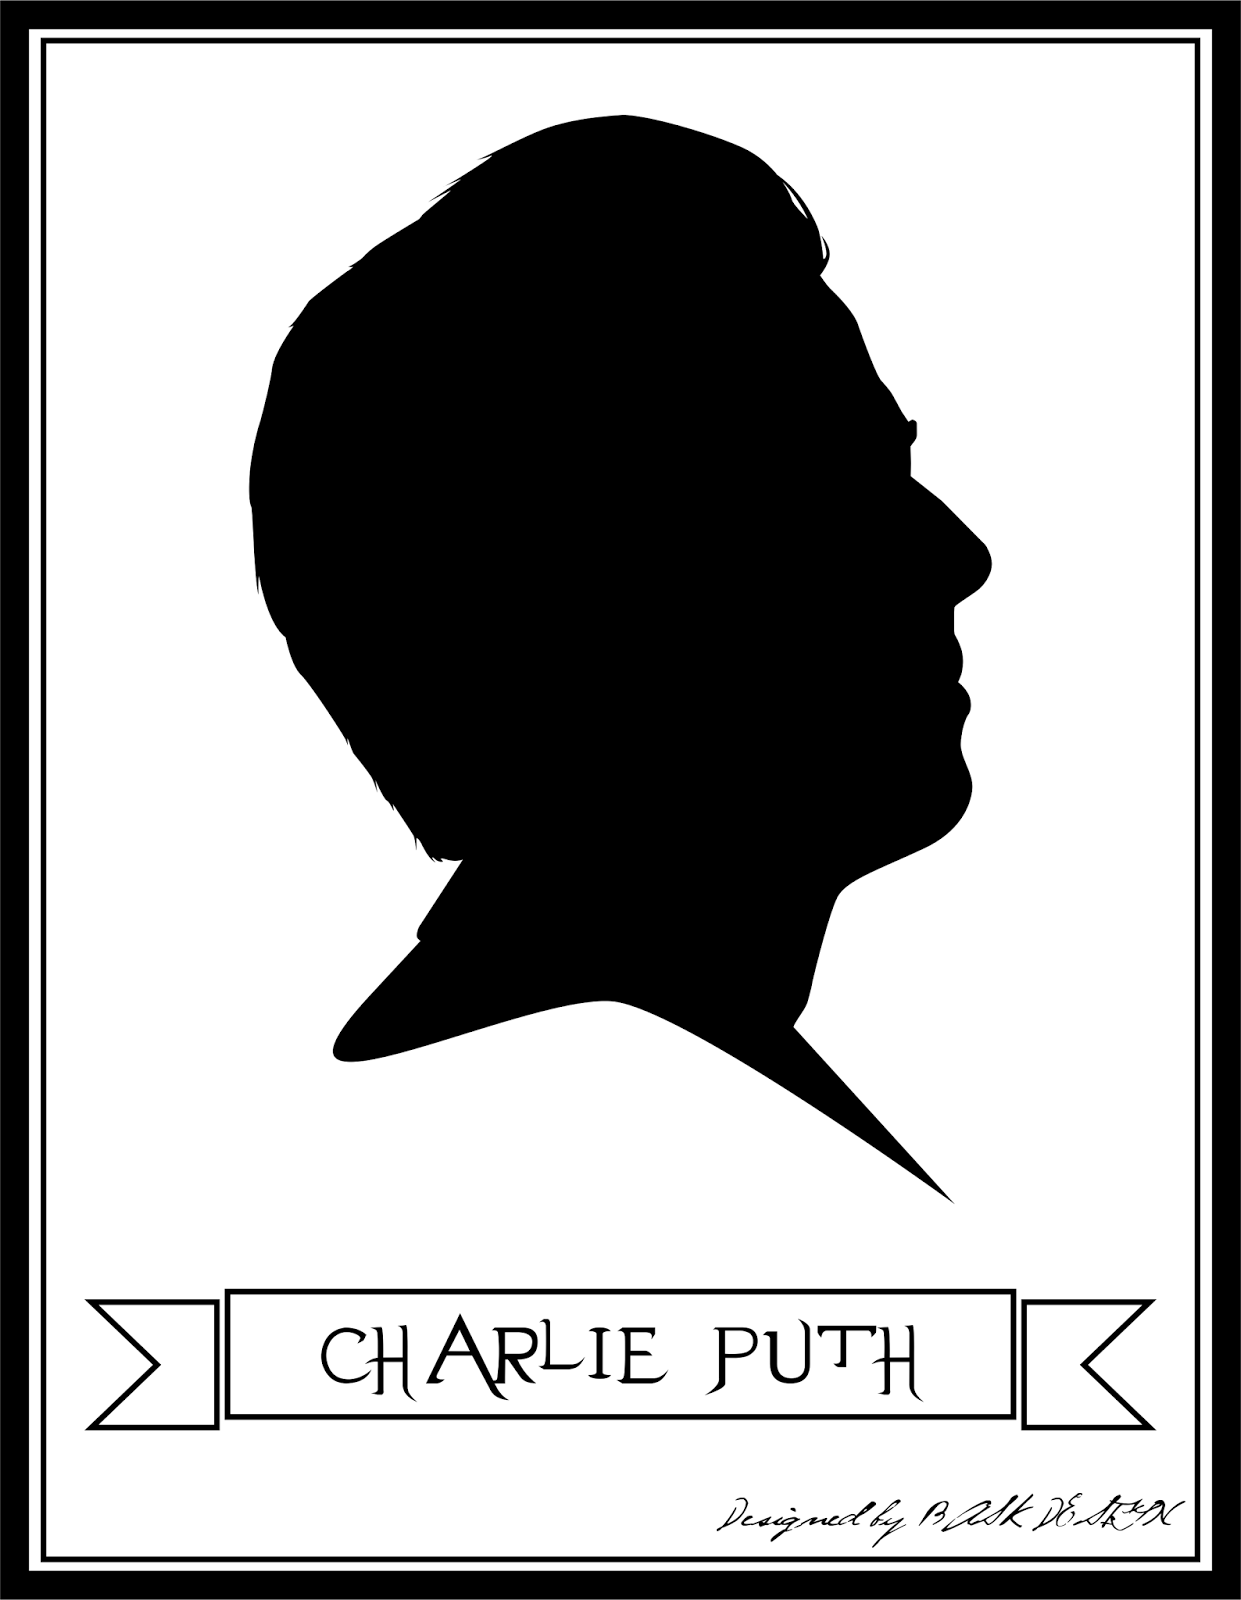 charlie puth in silhouette by beauty aulia beauty aulia charlie puth in silhouette by beauty